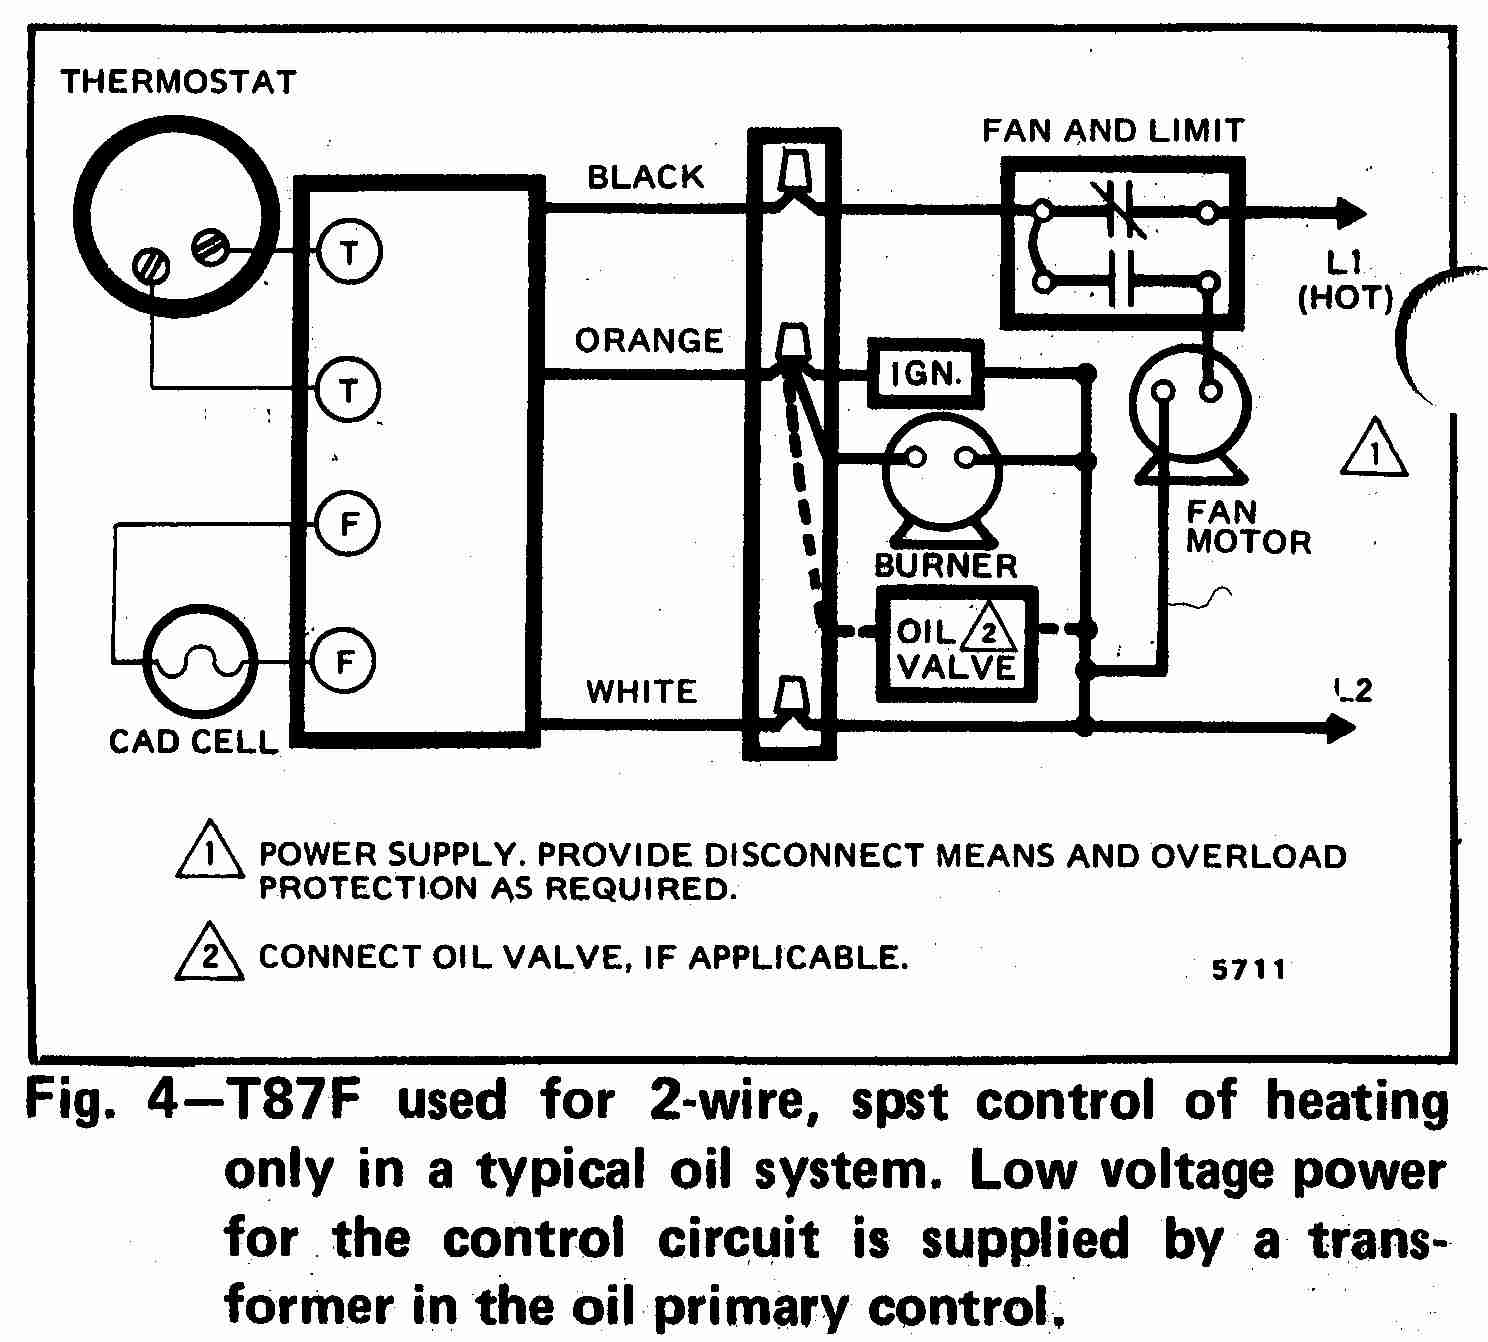 Wiring Diagram For Heating System : Room thermostat wiring diagrams for hvac systems